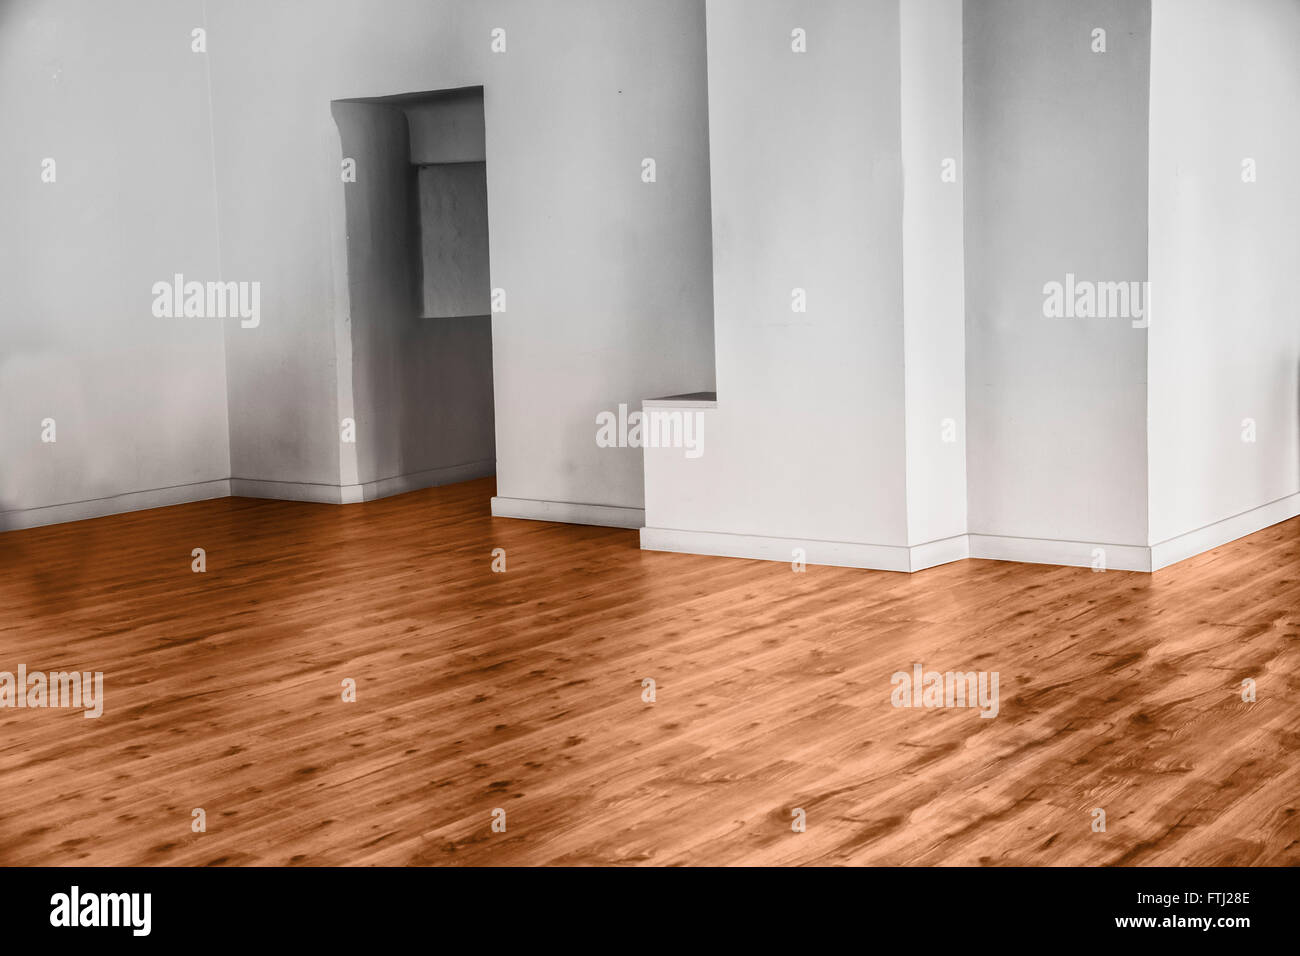 View Of Empty Unfurnished Room With Parquet And White Walls   Stock Image